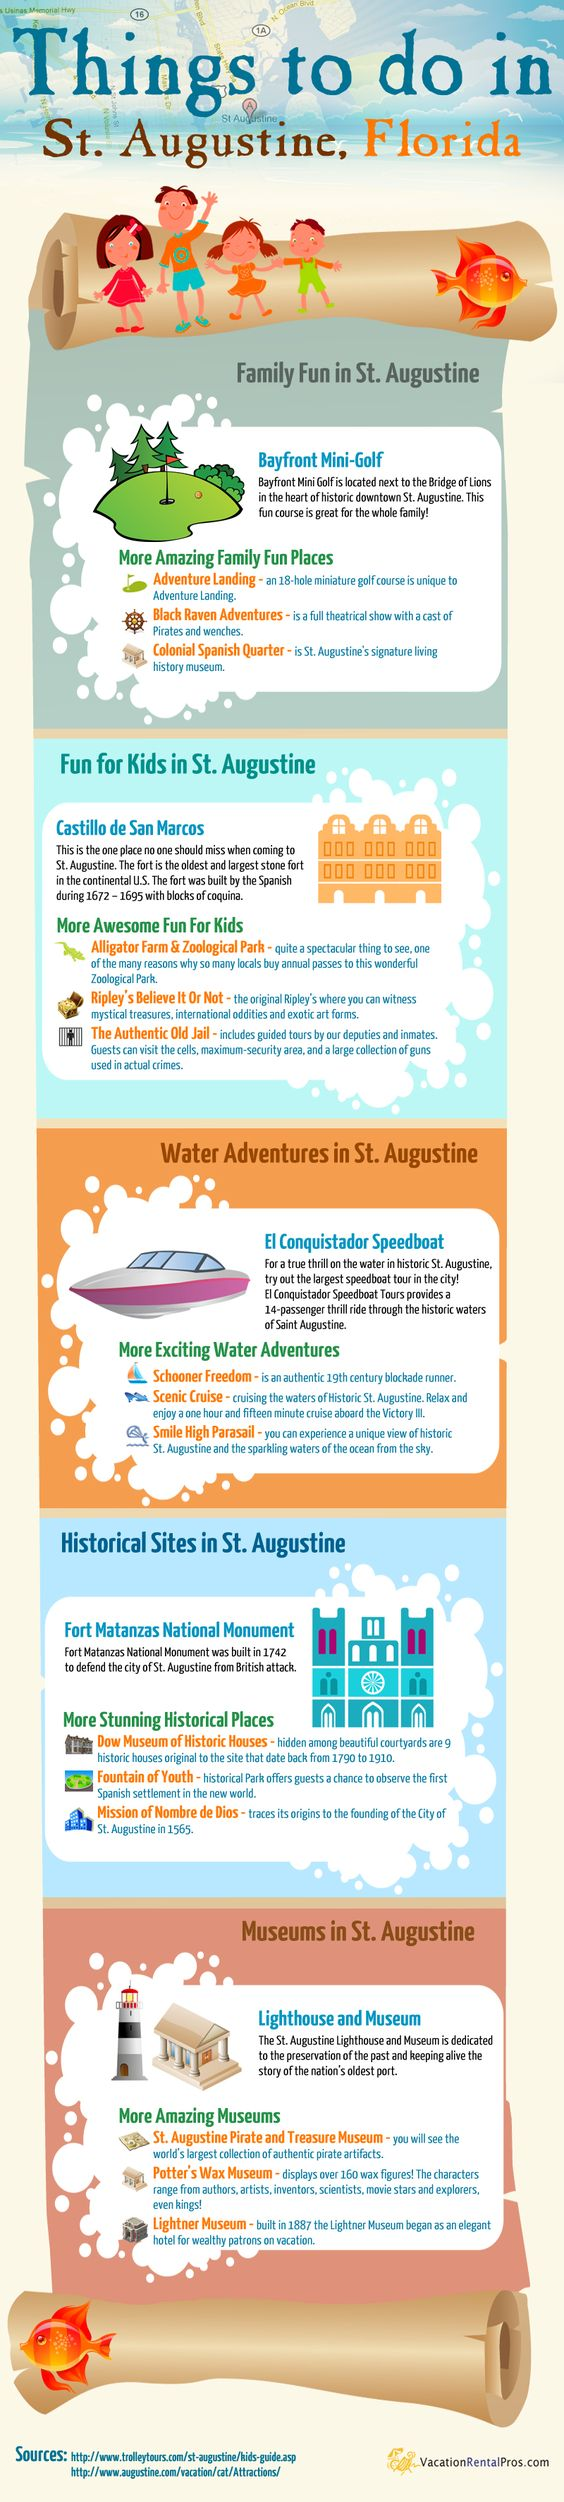 Come Discover The City Of St Augustine Florida Diverse Adventures Await The Whole Family